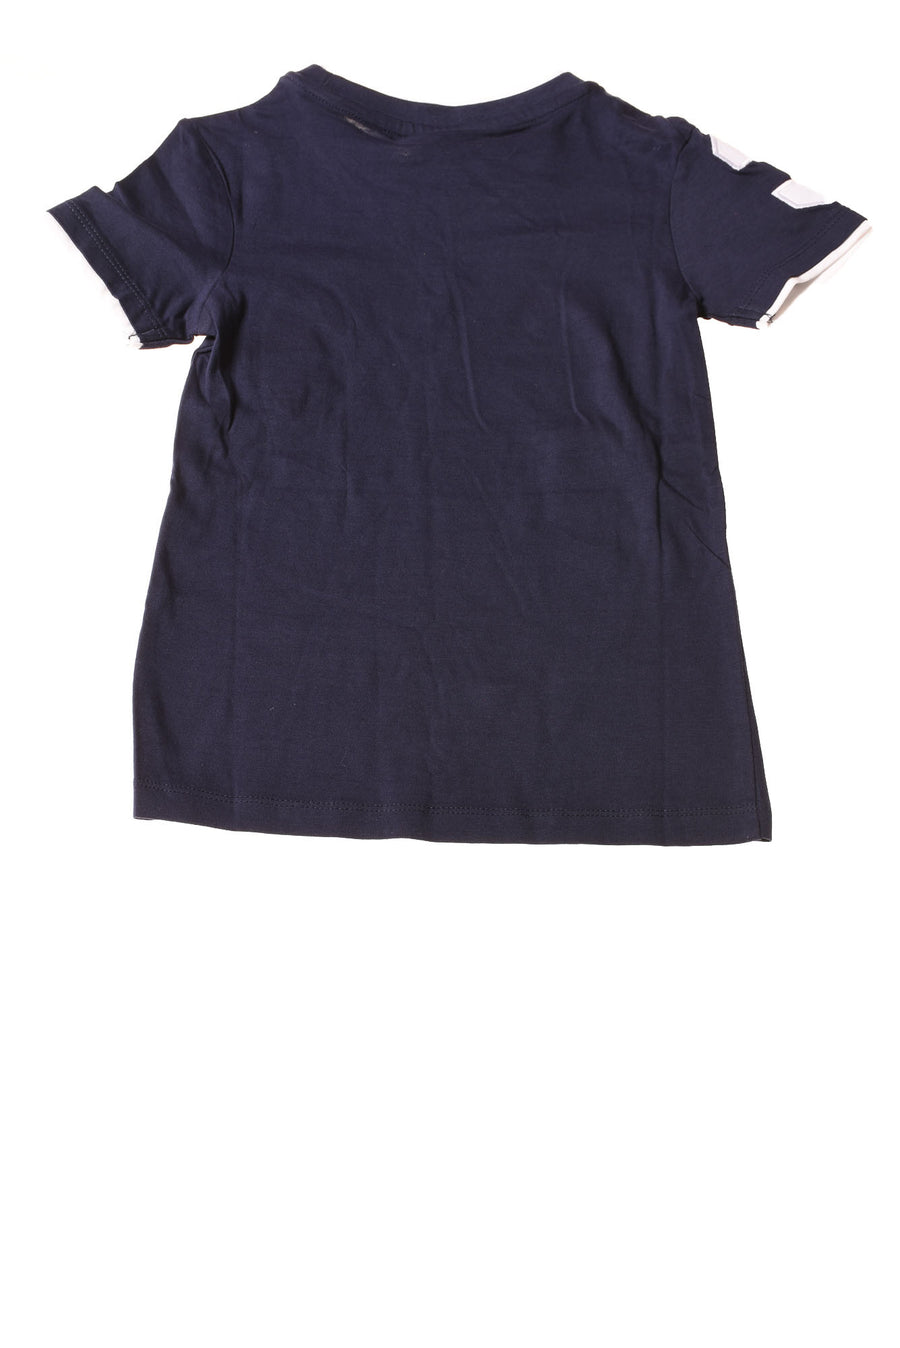 NEW U.S. Polo Assn. Baby Top XX-Small Blue